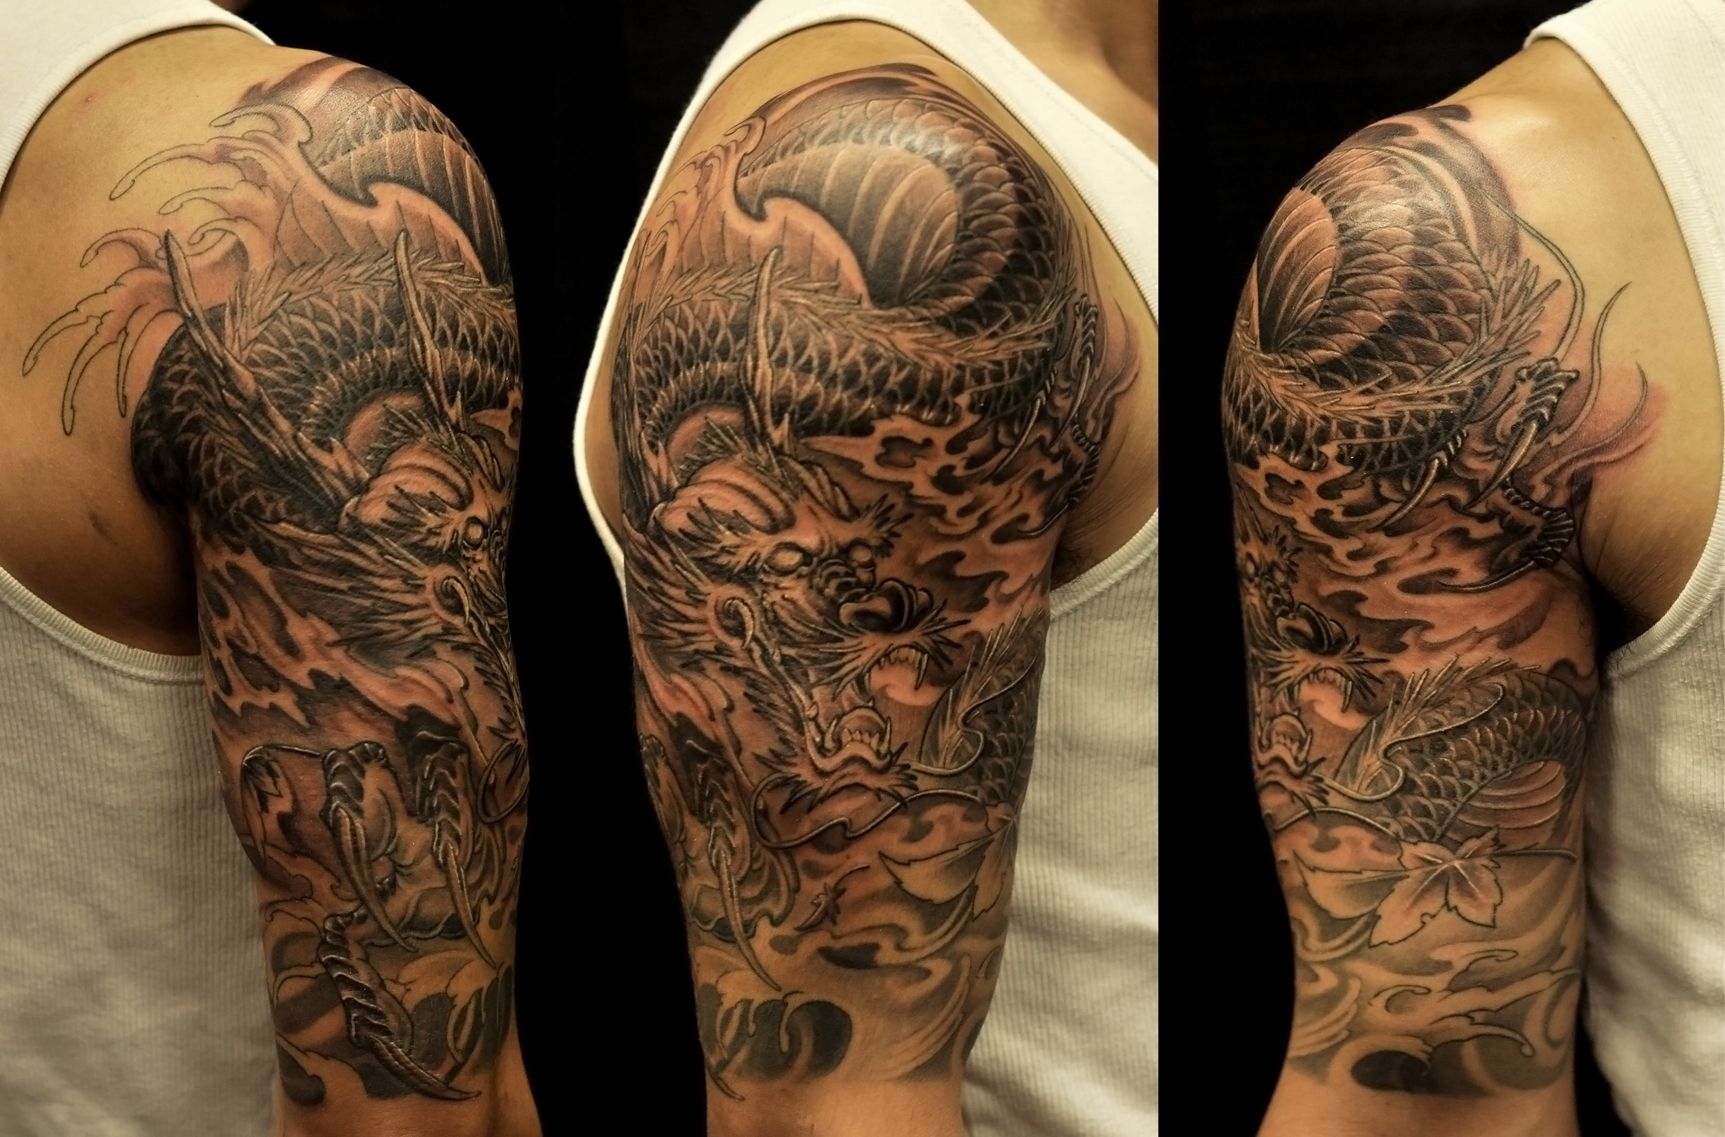 Half Sleeves Tattoo Collection From Dragon Tattoo Ideas Description in size 1725 X 1137